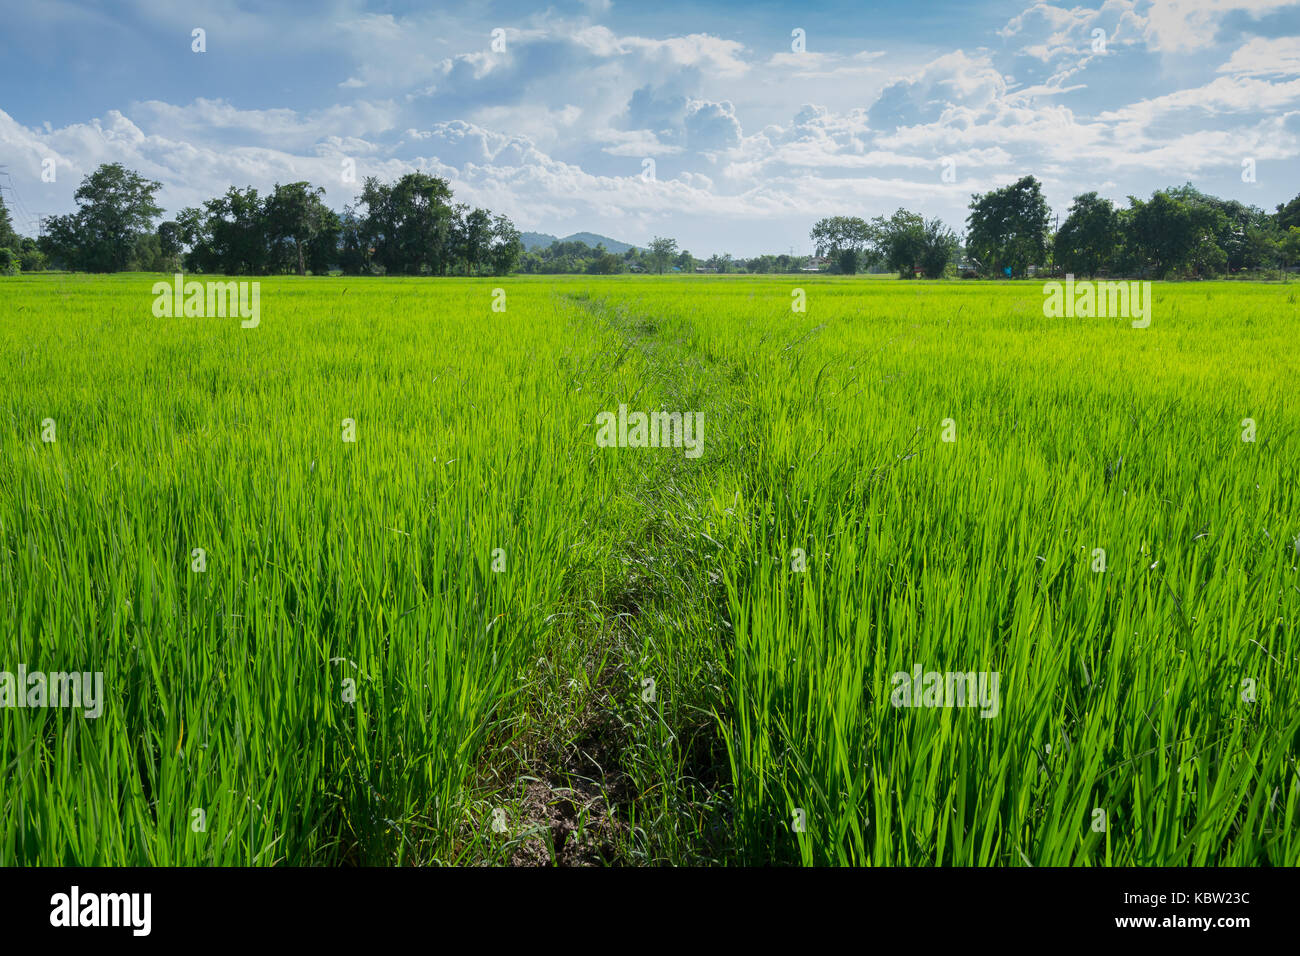 Image of green rice field with blue sky for background usage. - Stock Image